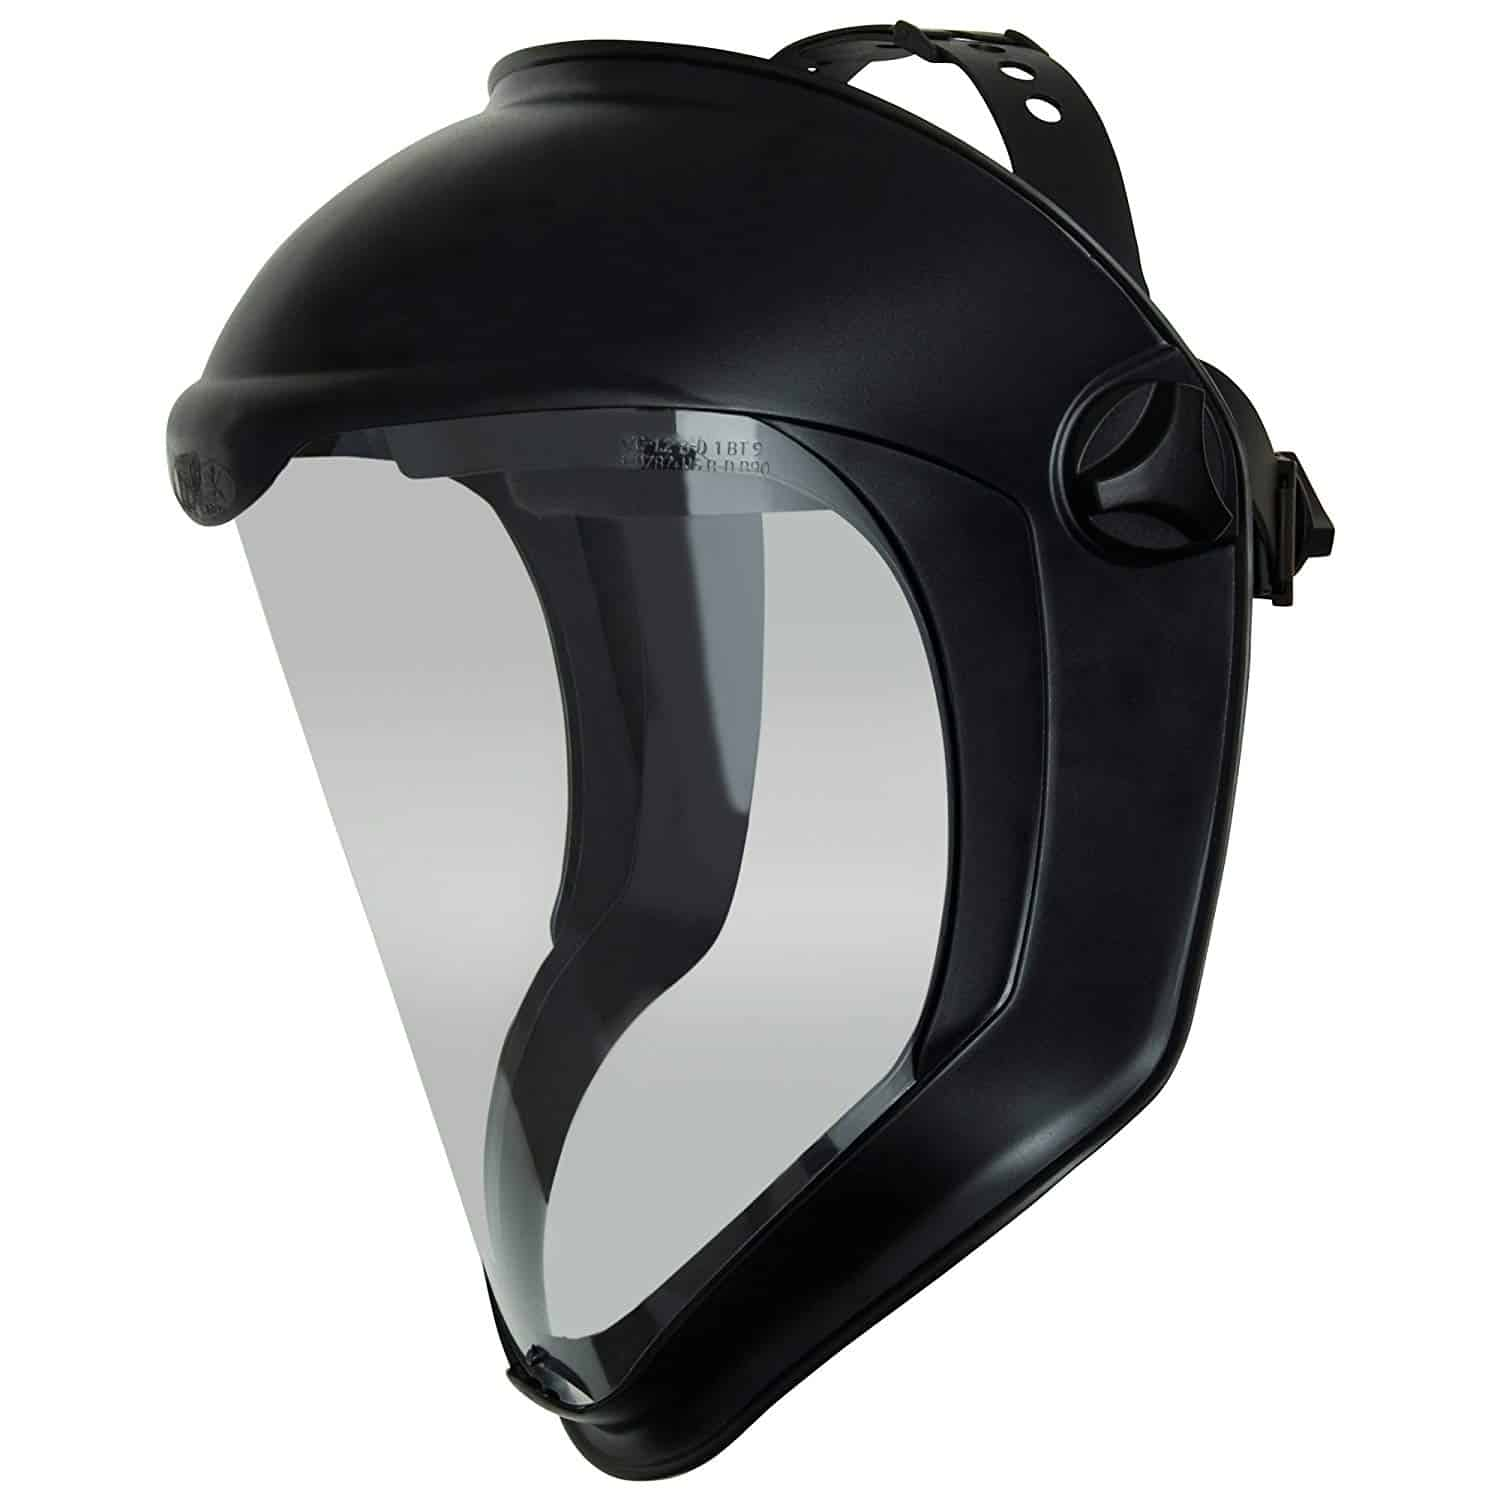 Uvex by Honeywell Bionic Face Shield